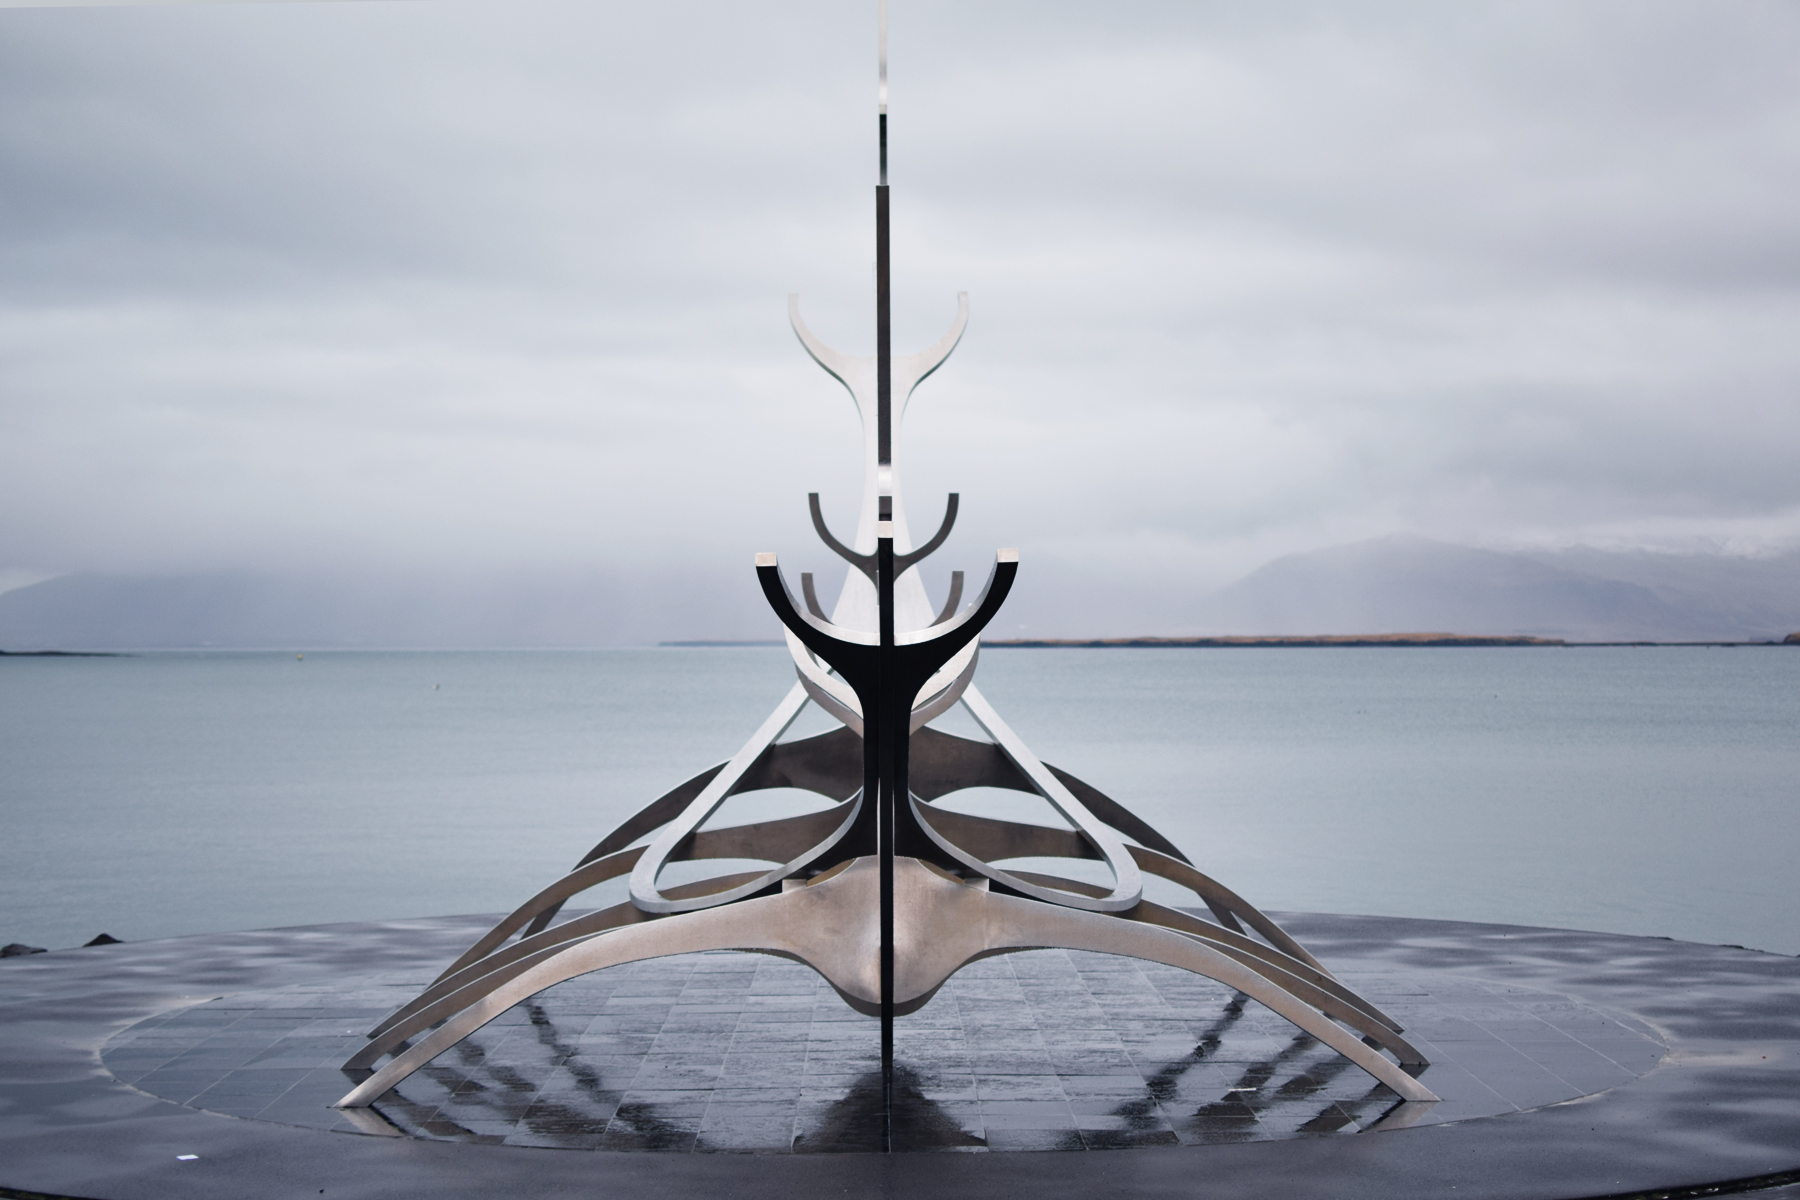 Sun Craft Sculpture in Reykjavic